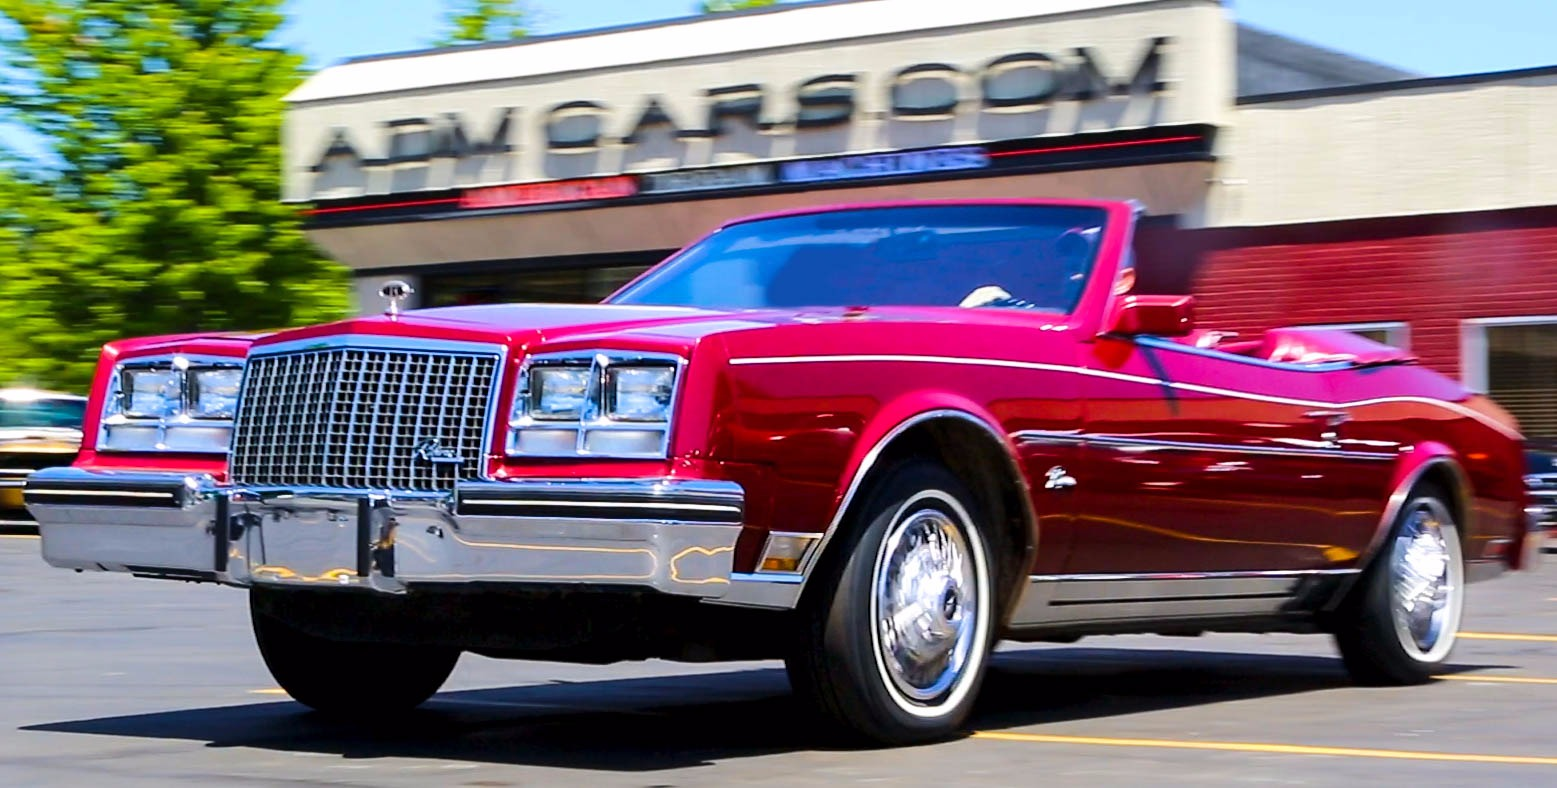 For Sale Used 1982 Buick Riviera Convertible Ruby Red Loaded Leather, Low Miles 36k, Incredible Car | American Dream Machines Des Moines IA 50309